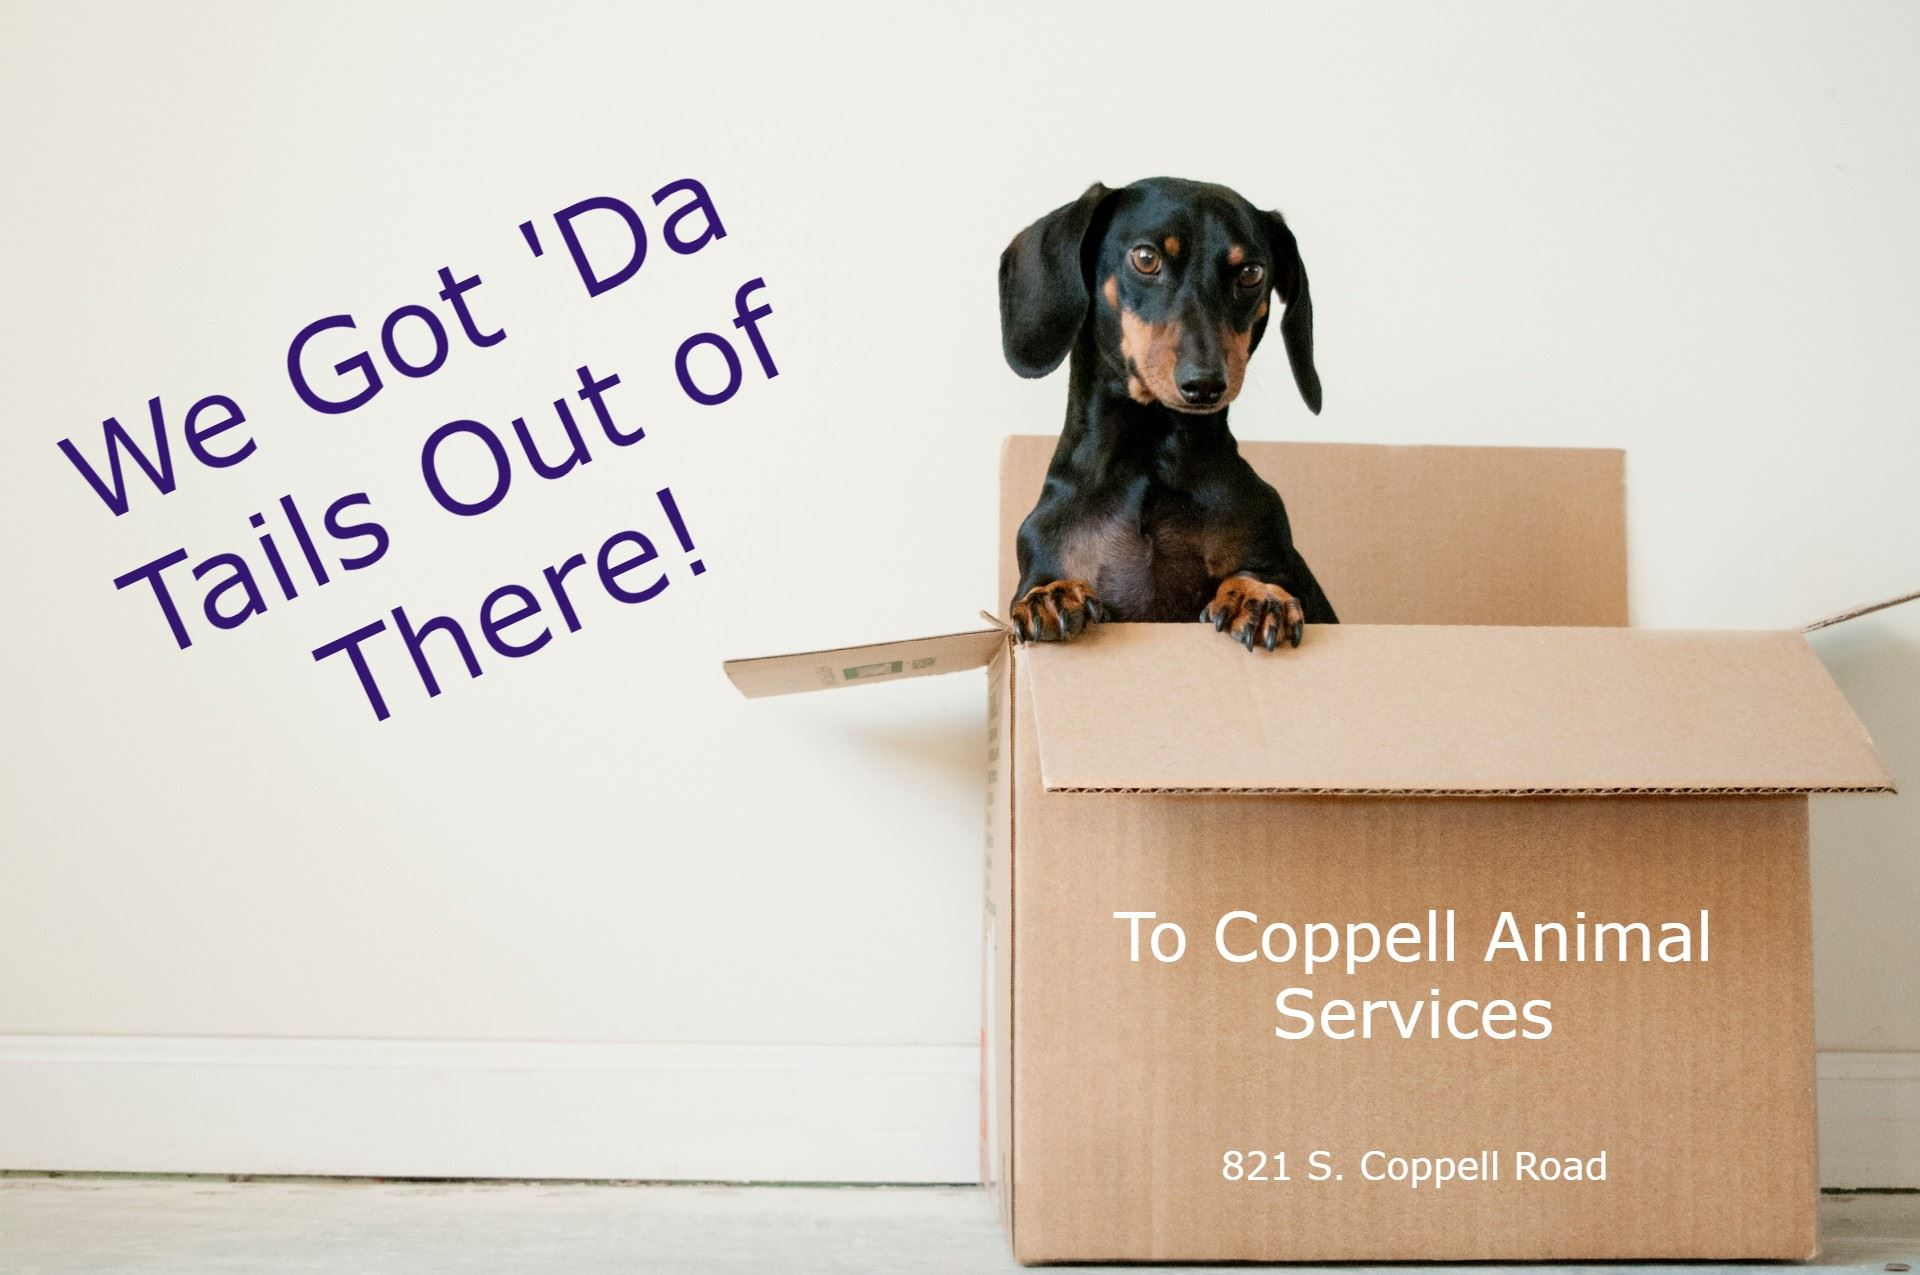 Dachshund, black and tan in color, coming out of moving box